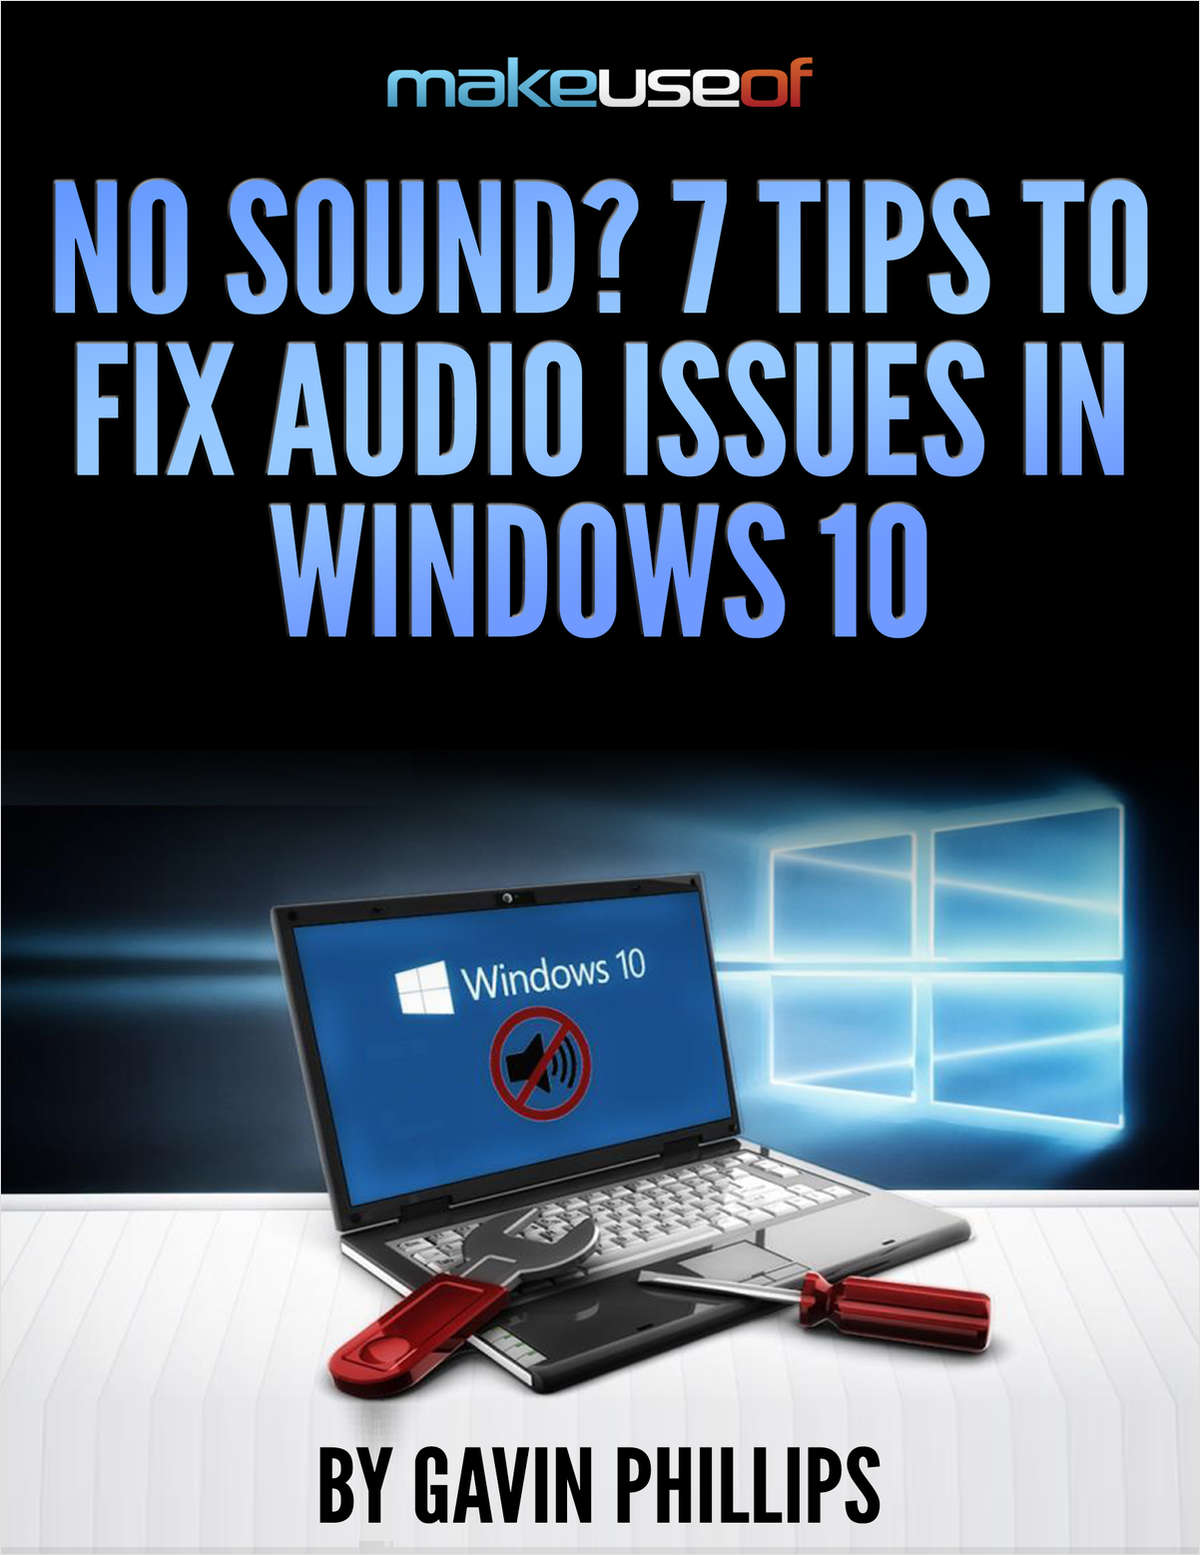 No Sound? 7 Tips to Fix Audio Issues in Windows 10